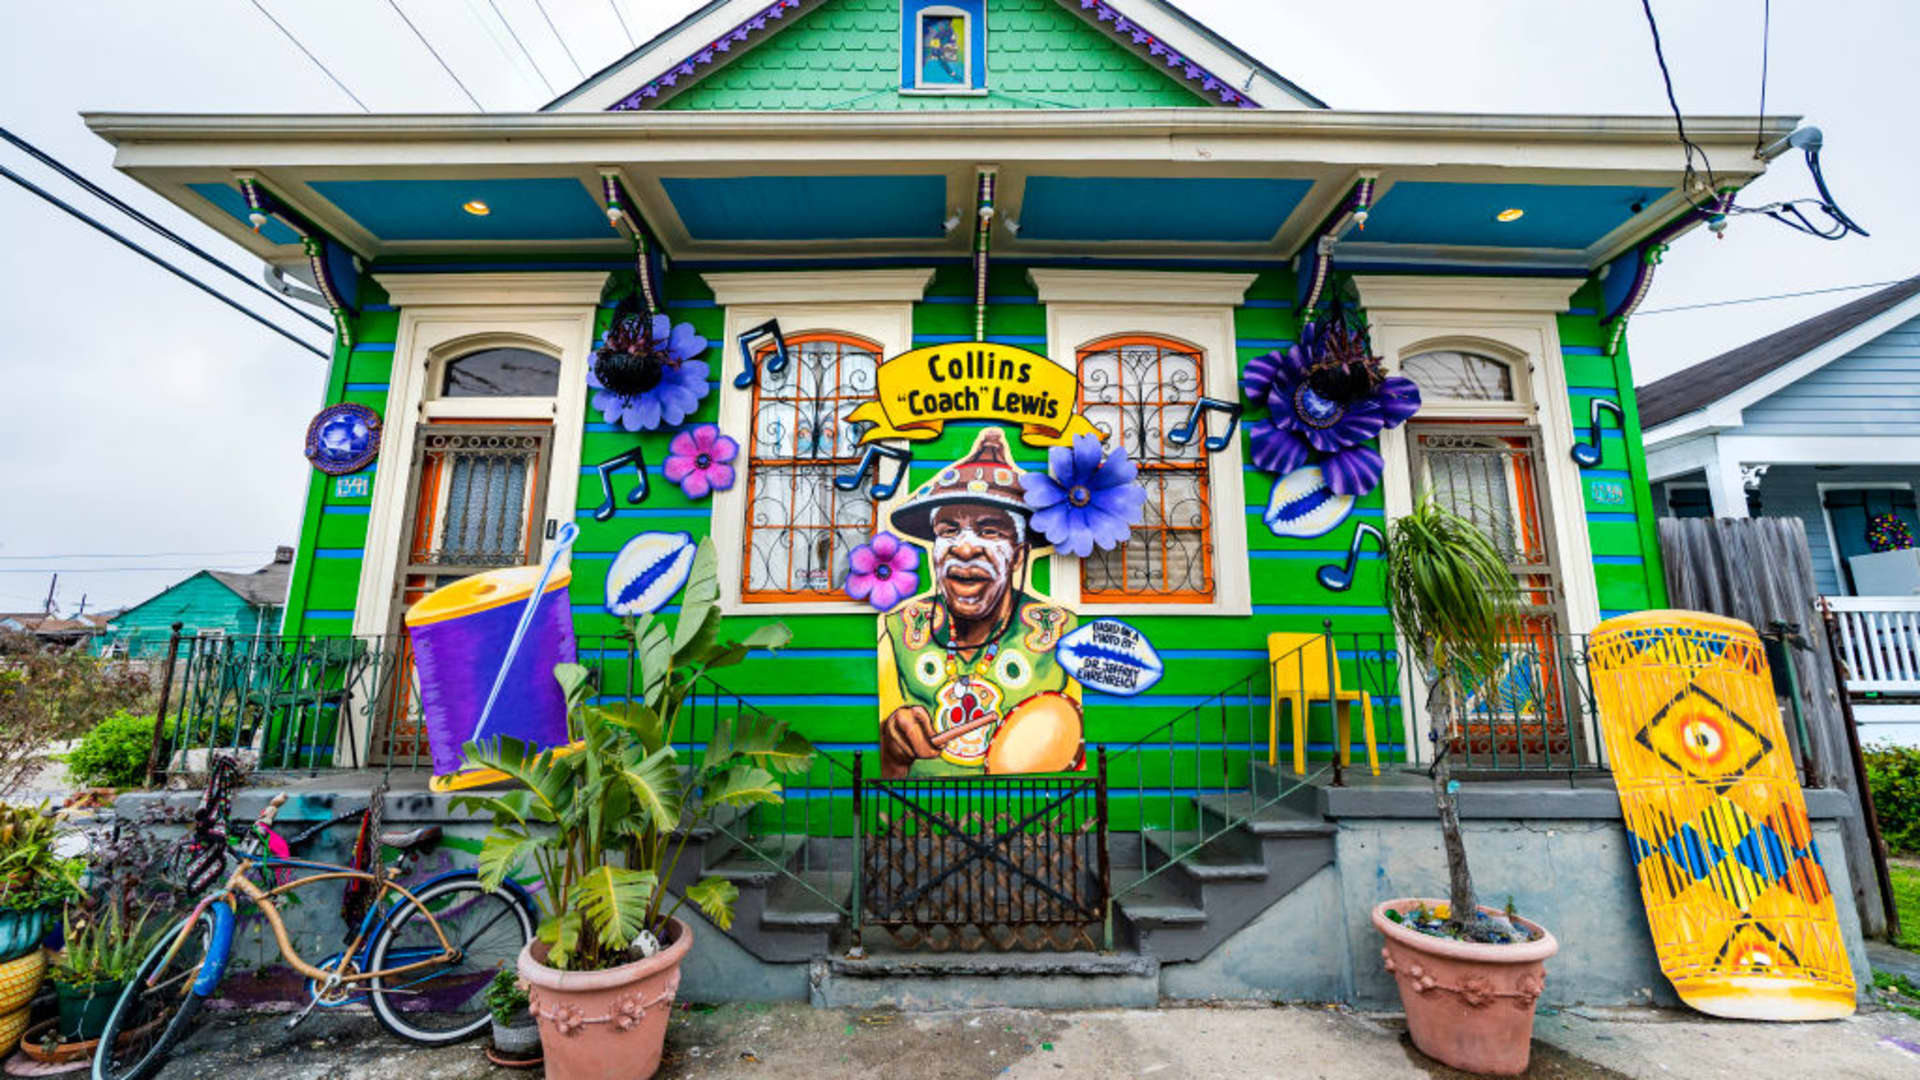 The Coach Lewis House, whose decorations are sponsored by Krewe of Red Beans, honors the life of the 7th Ward Mardi Gras Indian on February 15, 2021 in New Orleans, Louisiana.